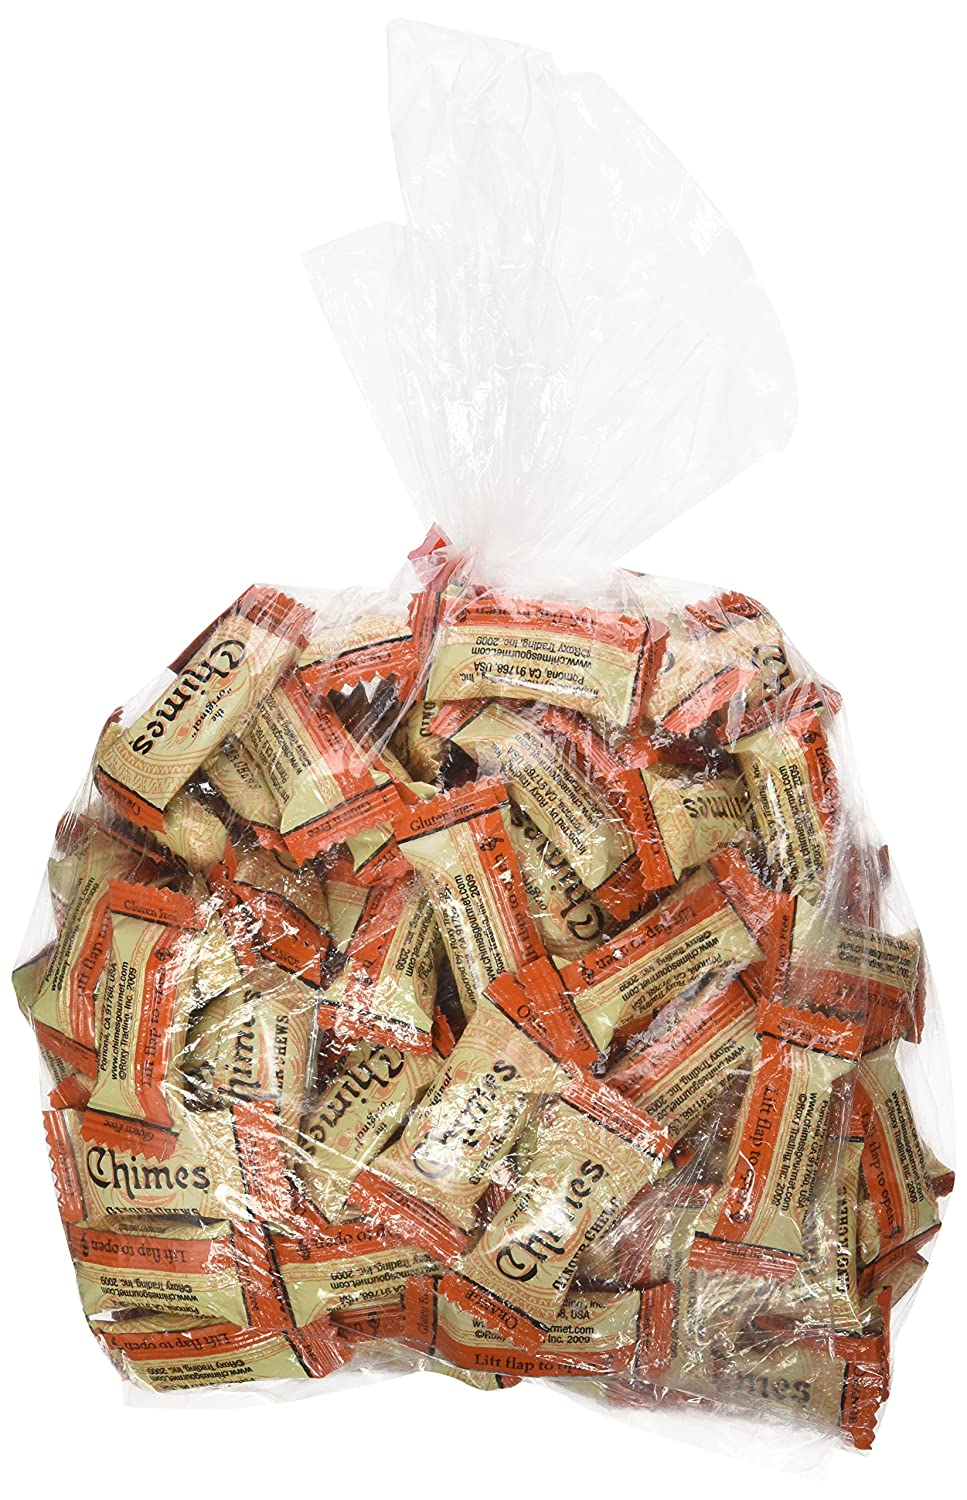 Chimes Orange Ginger Chews, 16 Ounce (Pack of 1)